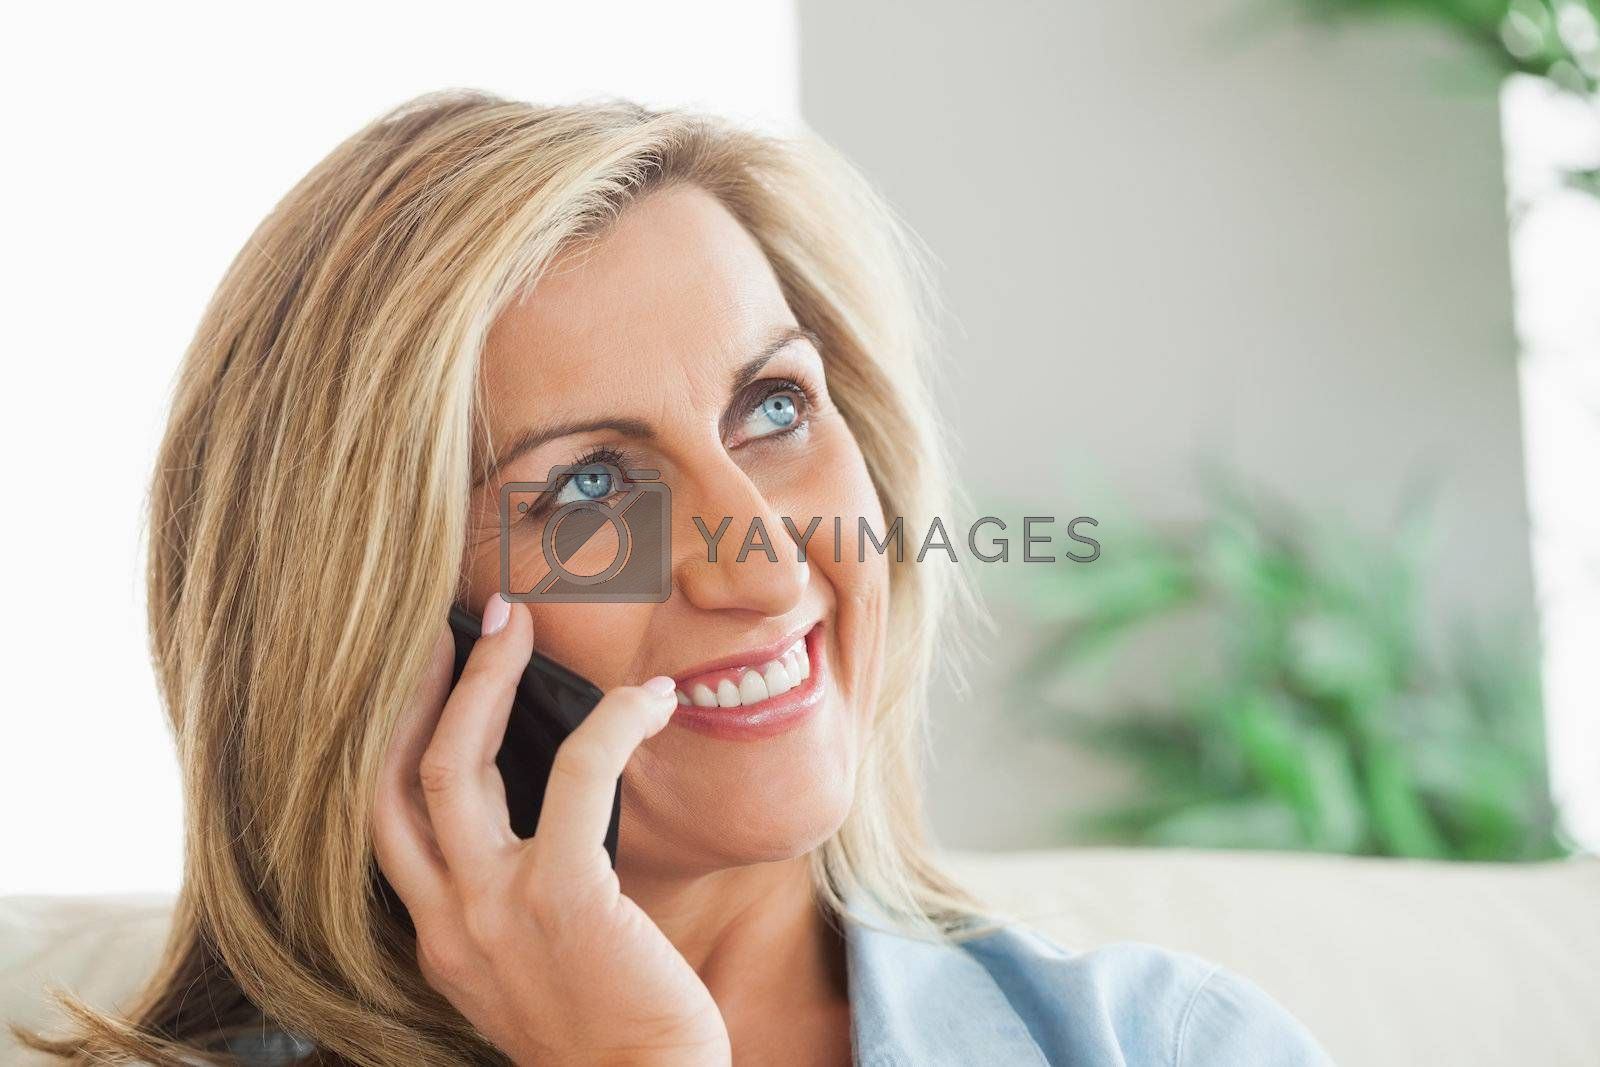 Smiling woman calling someone with her mobile phone by Wavebreakmedia